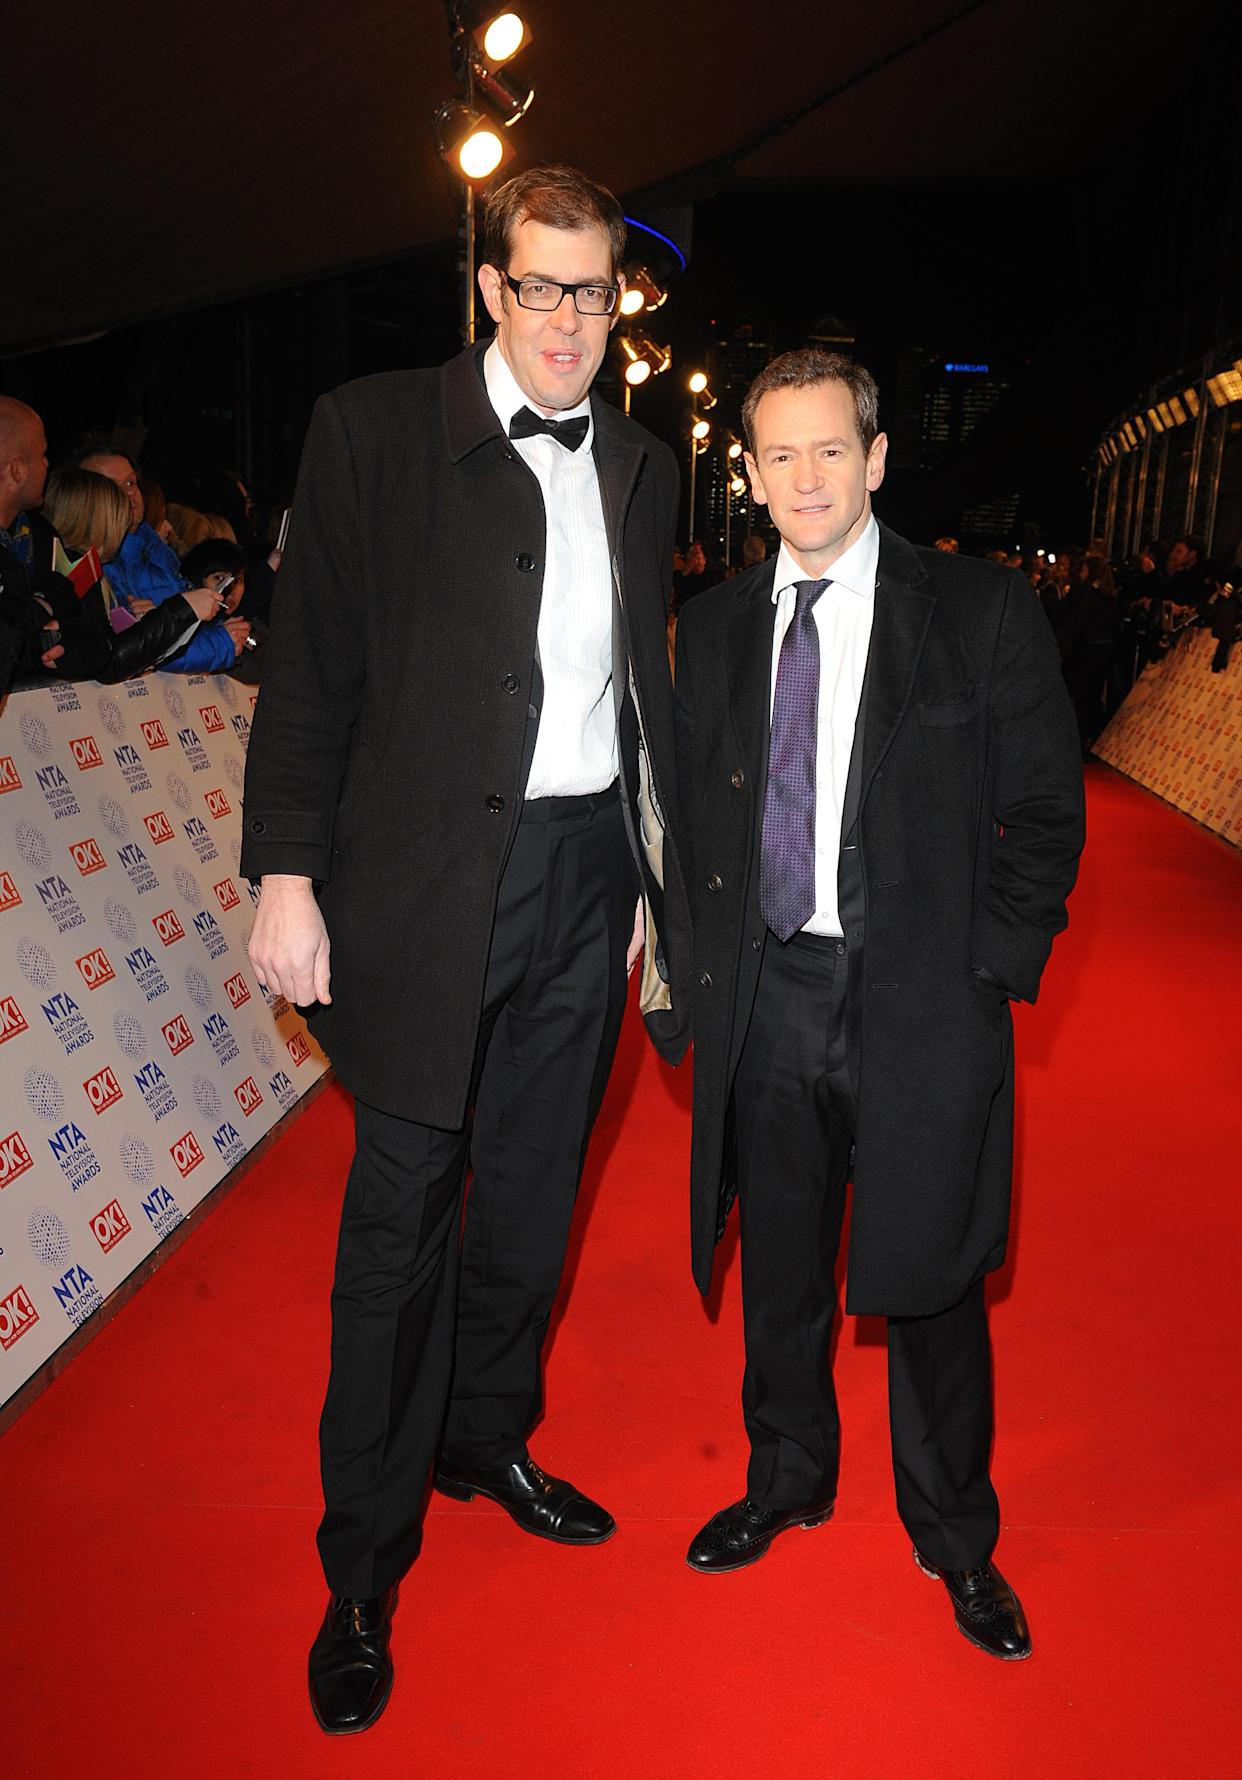 Richard Osman and Alexander Armstrong arriving for the 2013 National Television Awards at the O2 Arena, London.   (Photo by Ian West/PA Images via Getty Images)